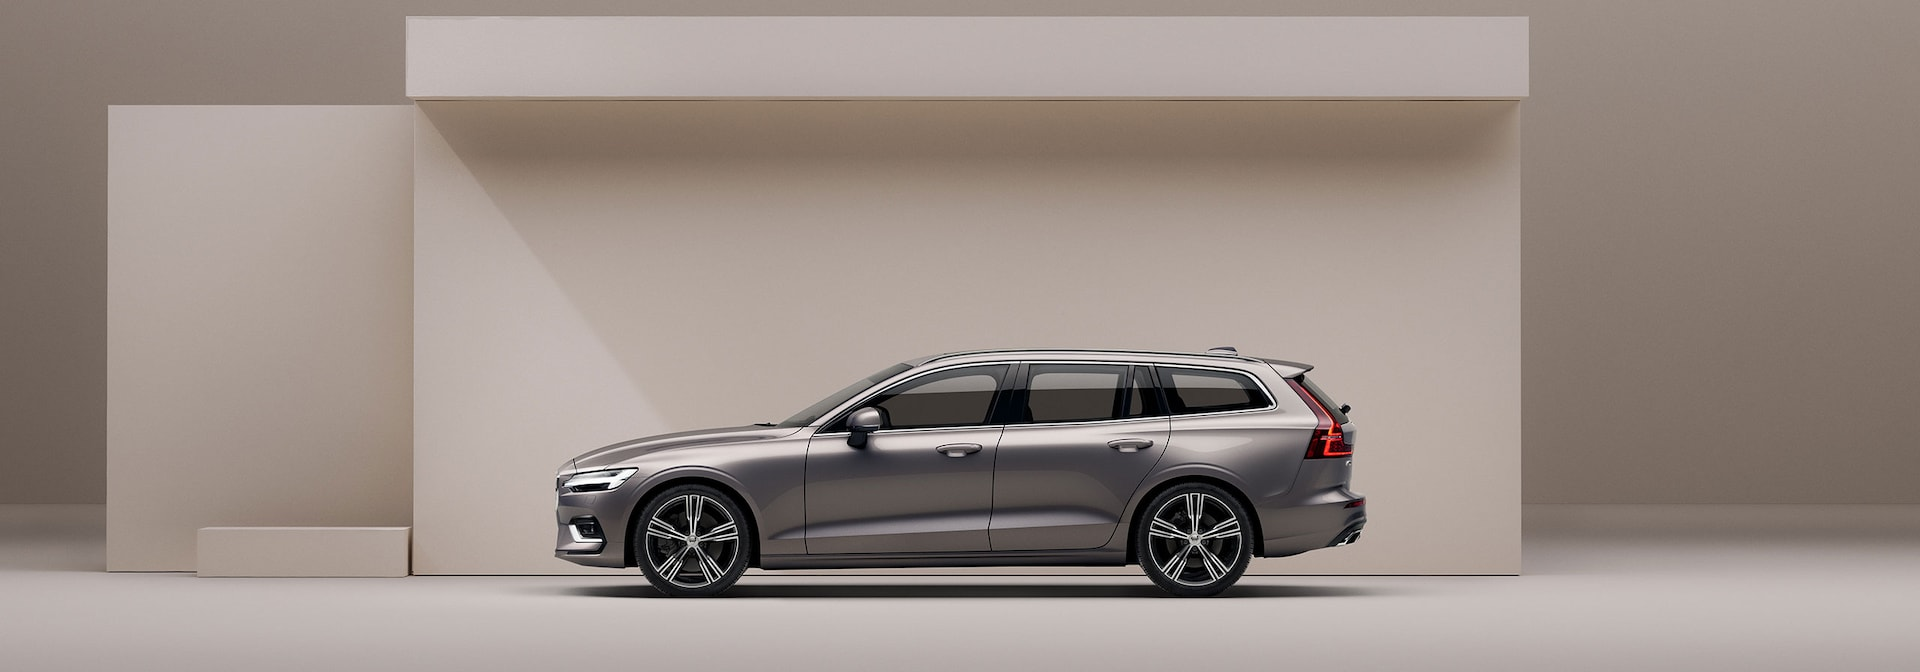 A beige Volvo V60 in a beige surrounding